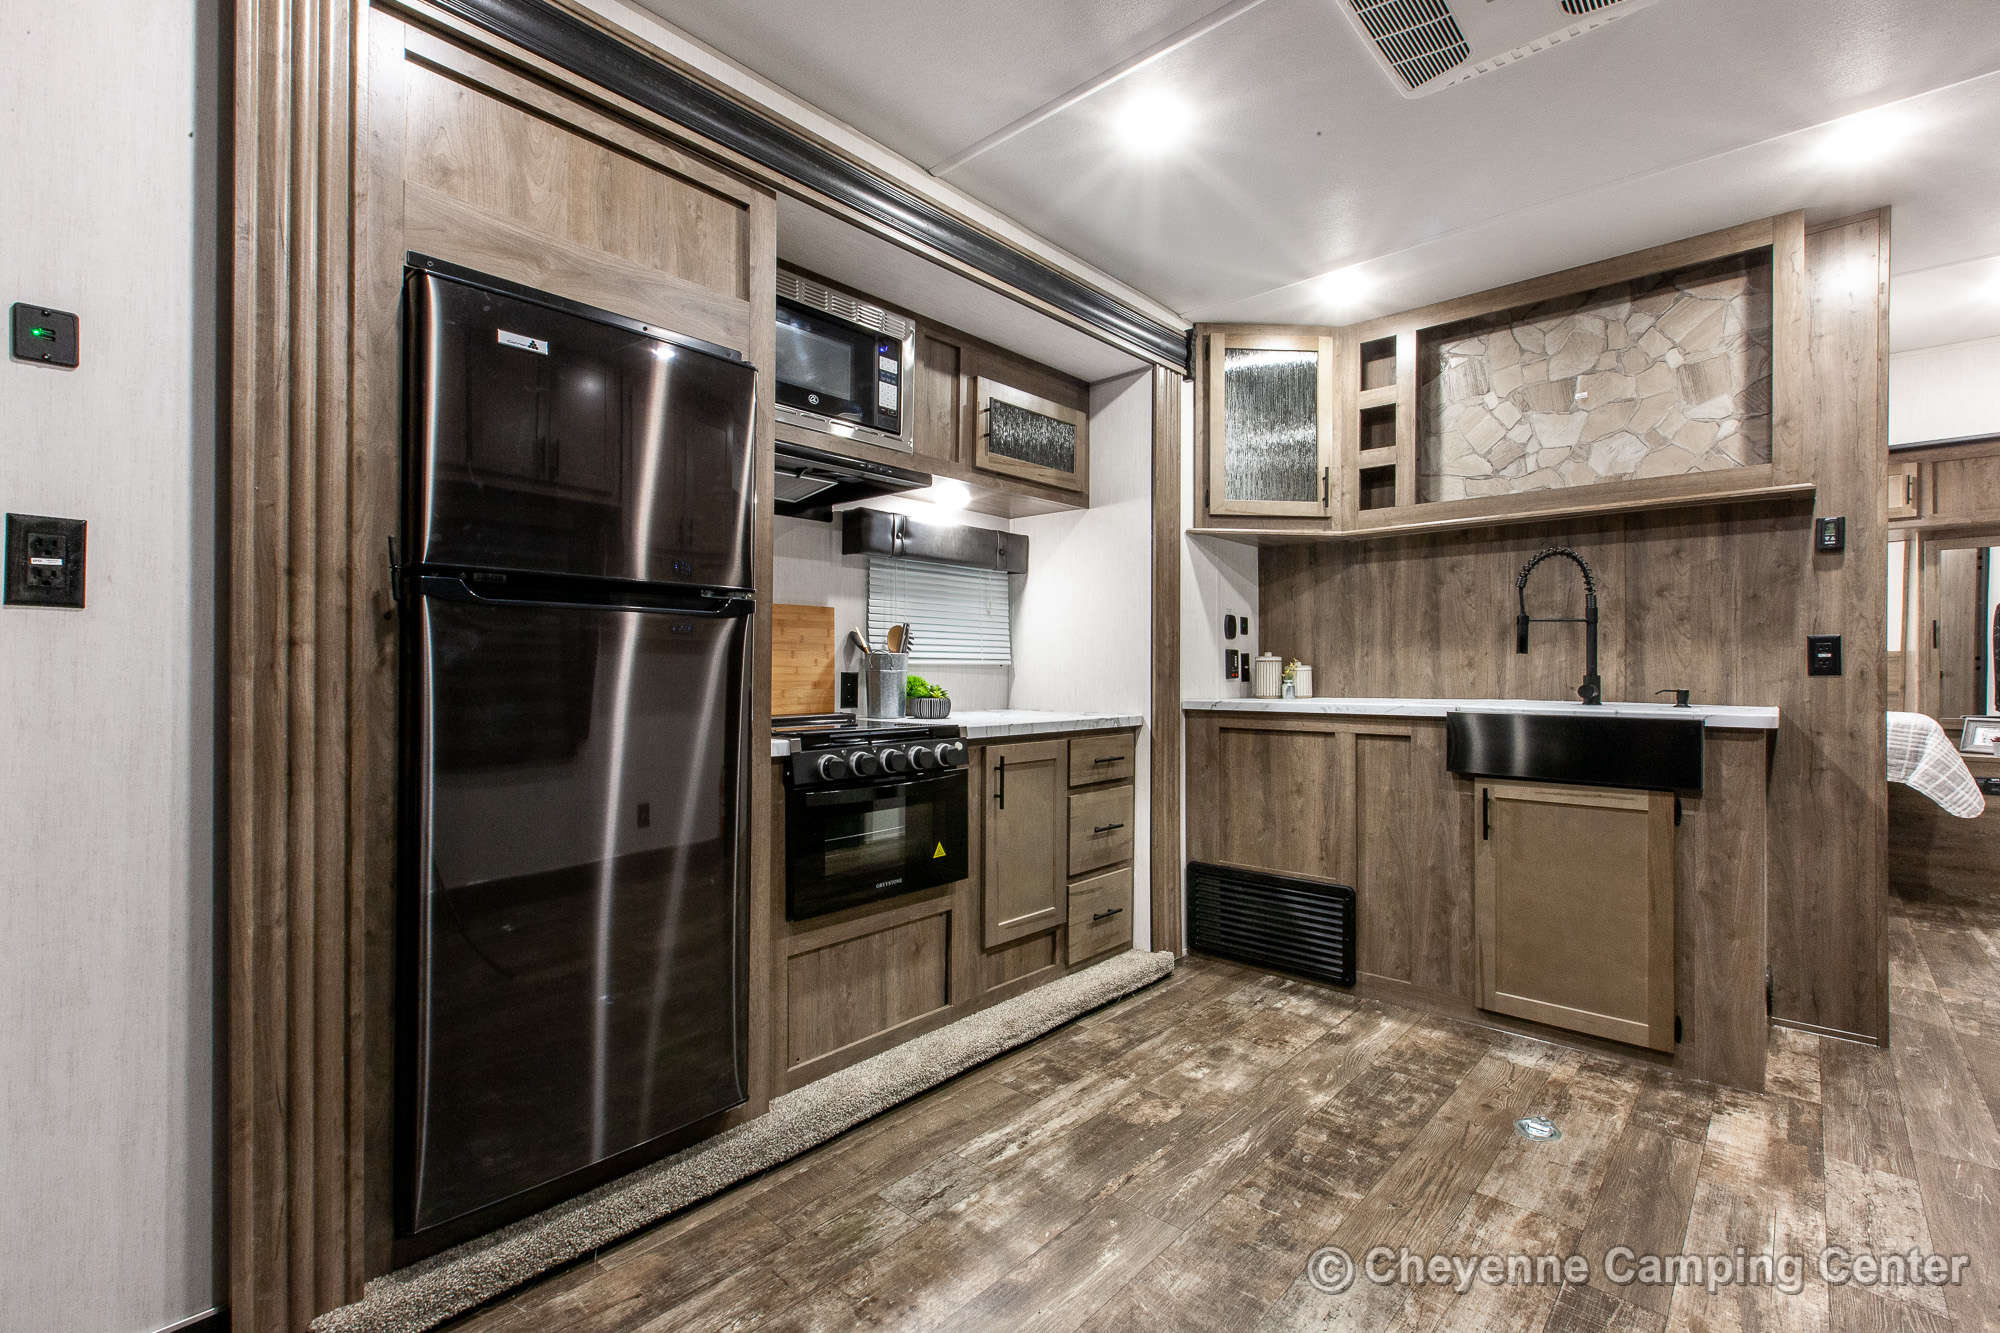 2022 Forest River Cherokee Wolf Pack 23PACK15 Bunkhouse Toy Hauler Travel Trailer Interior Image